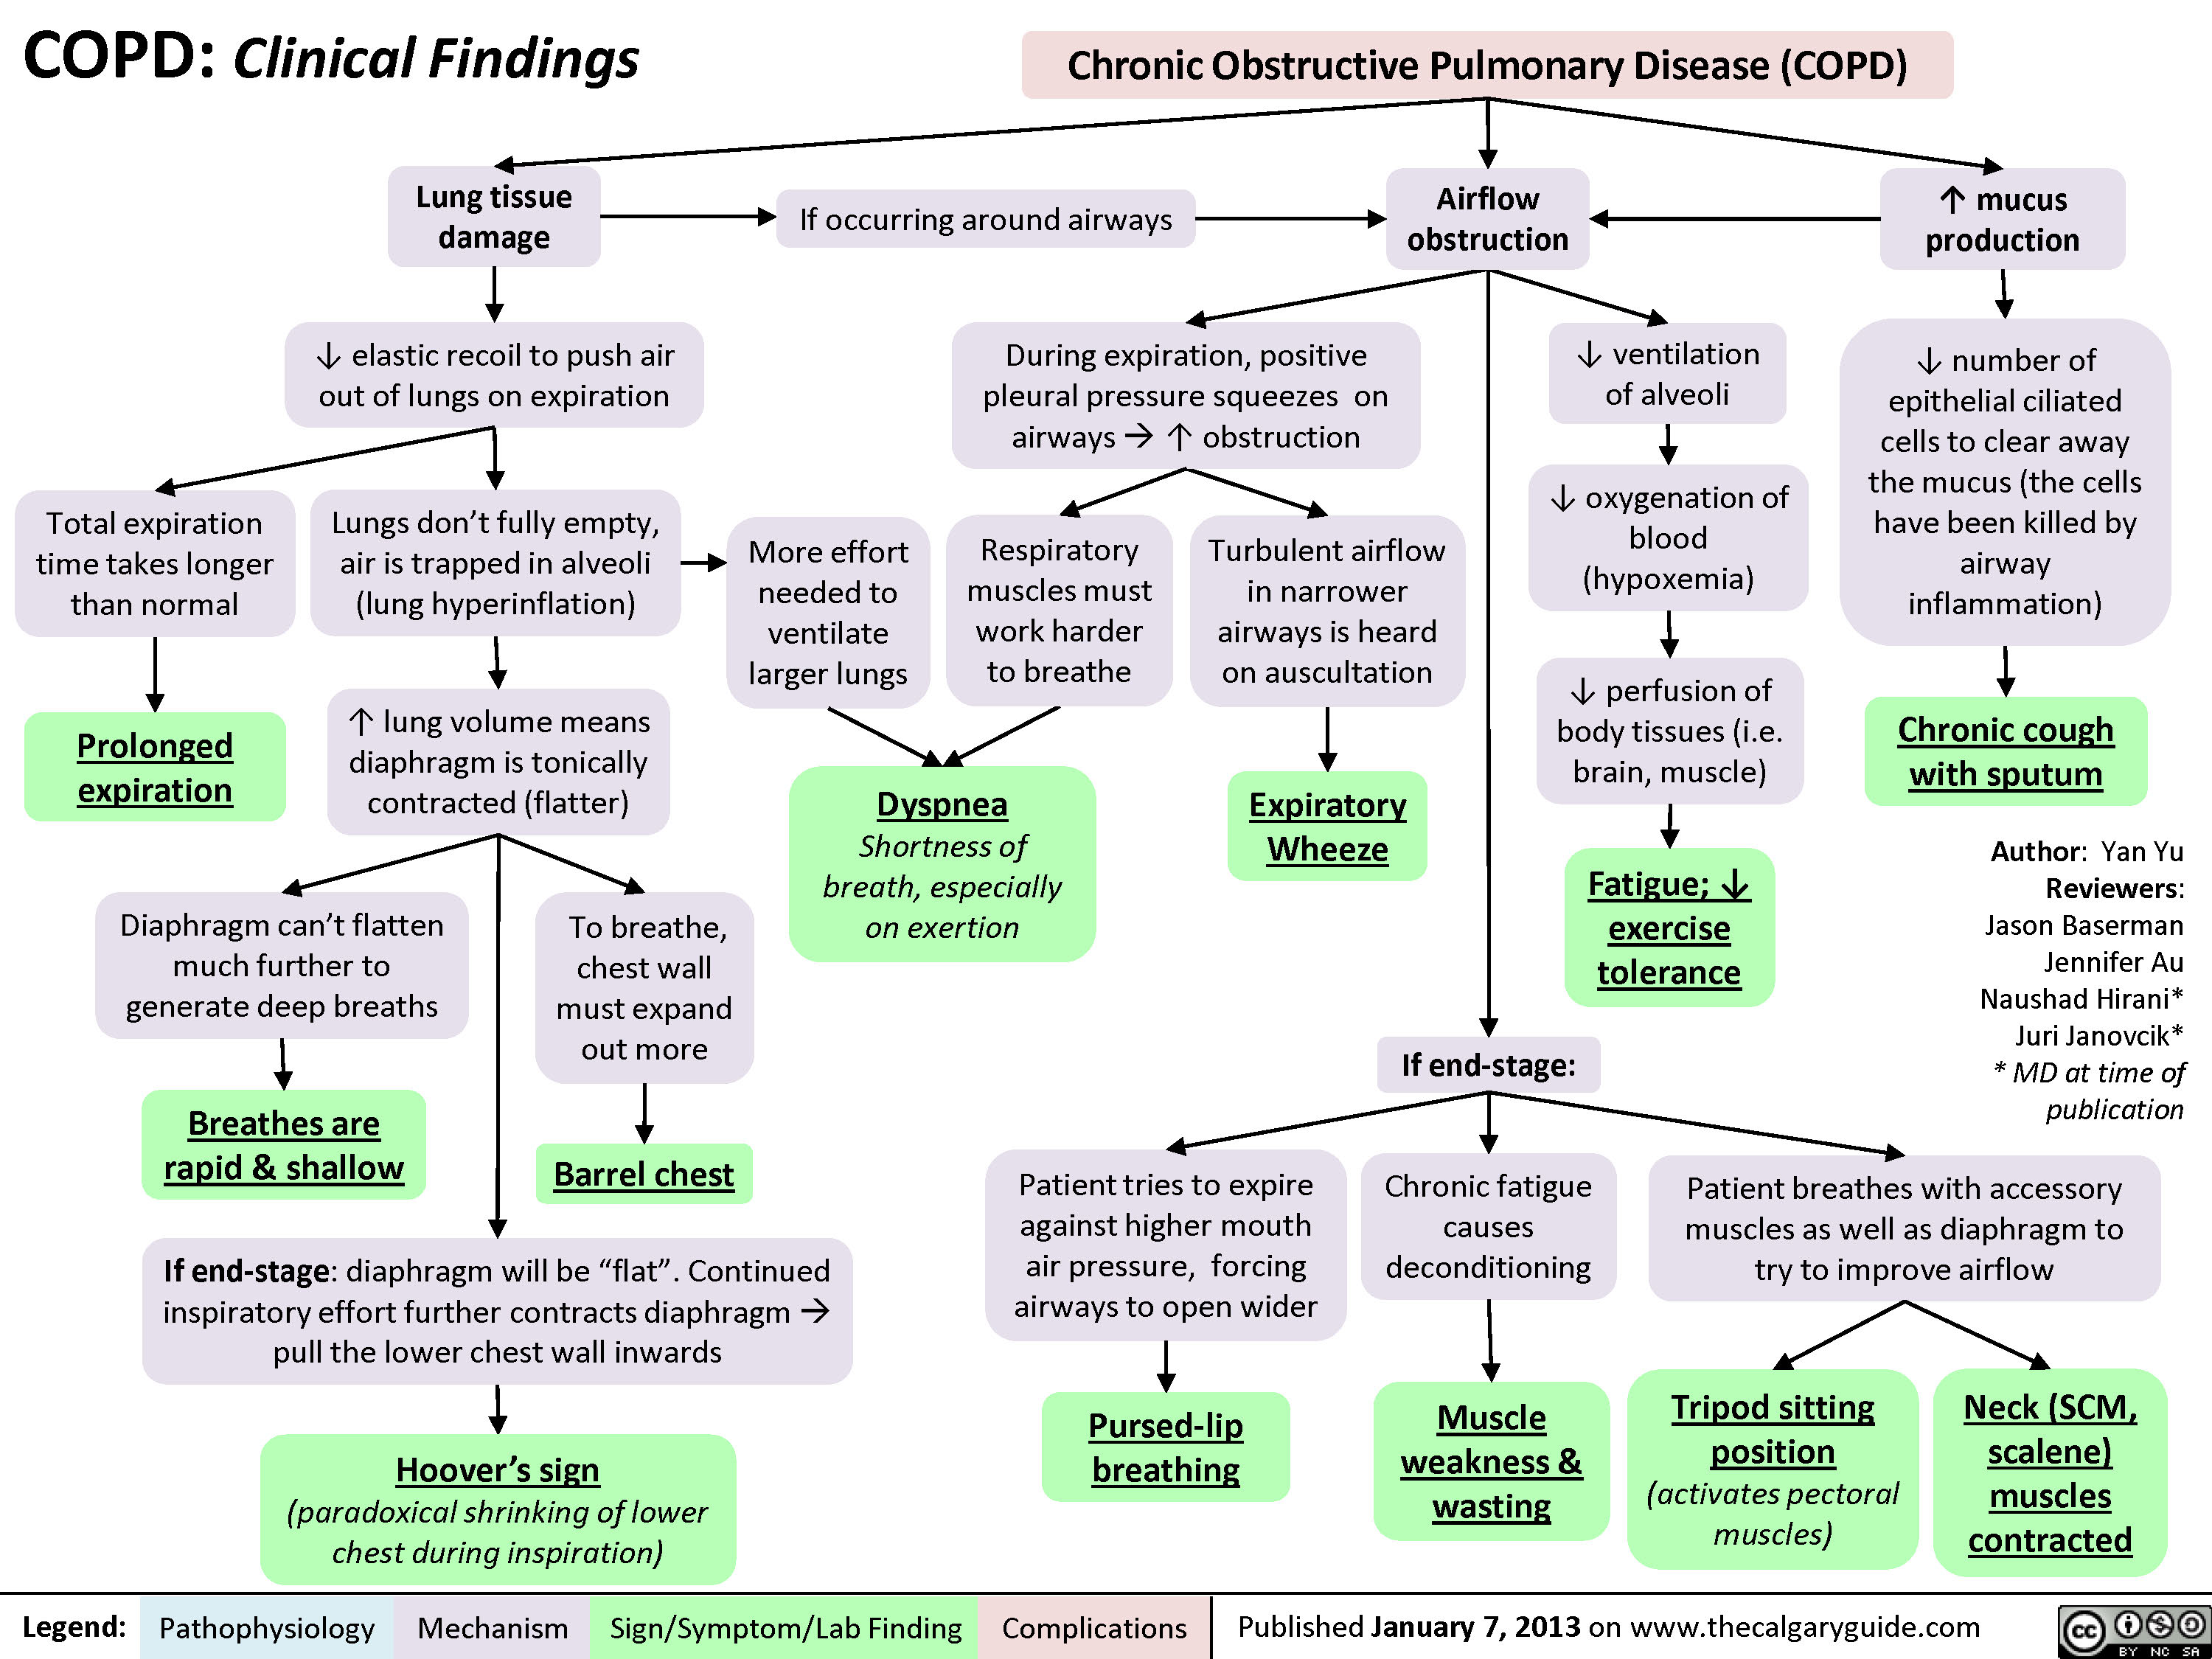 COPD: Clinical Findings